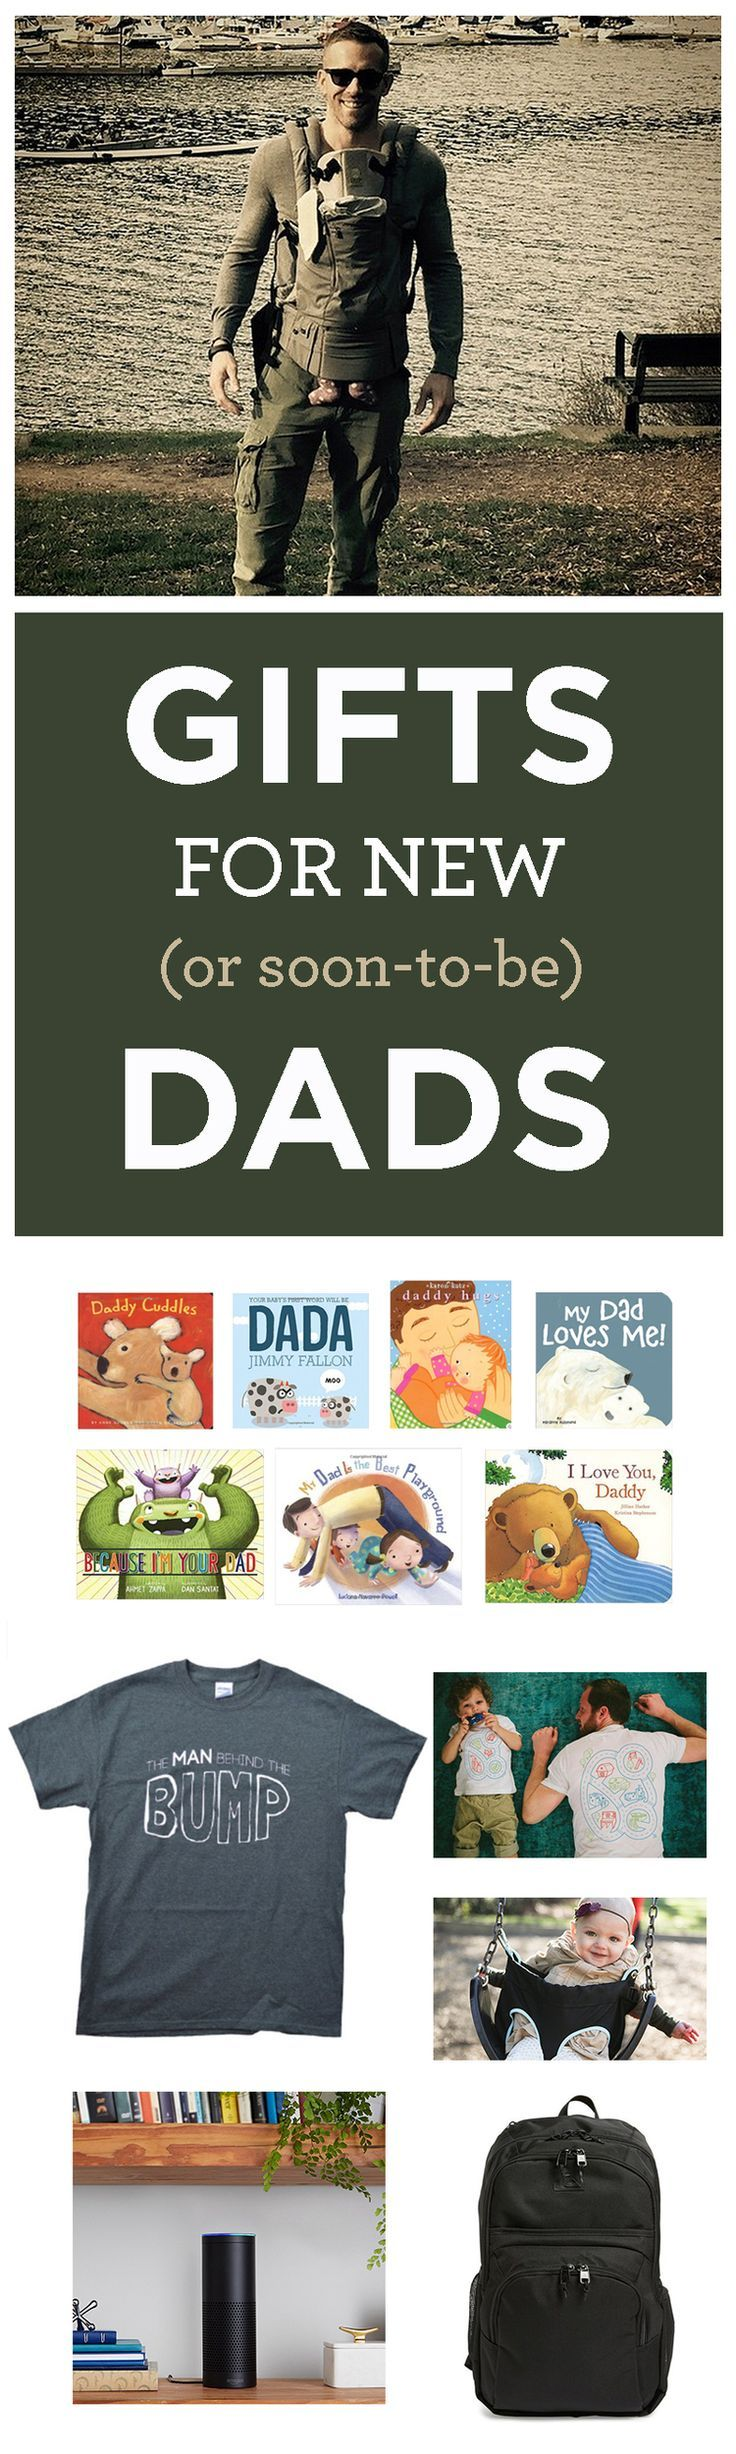 Whether it's for a baby shower, Father's Day or just for being awesome, here are some incredible gift ideas for new or soon-to-be dads. Includes splurges and DIY projects, gifts from kids and from a spouse! #fathersday #fathersdaygifts